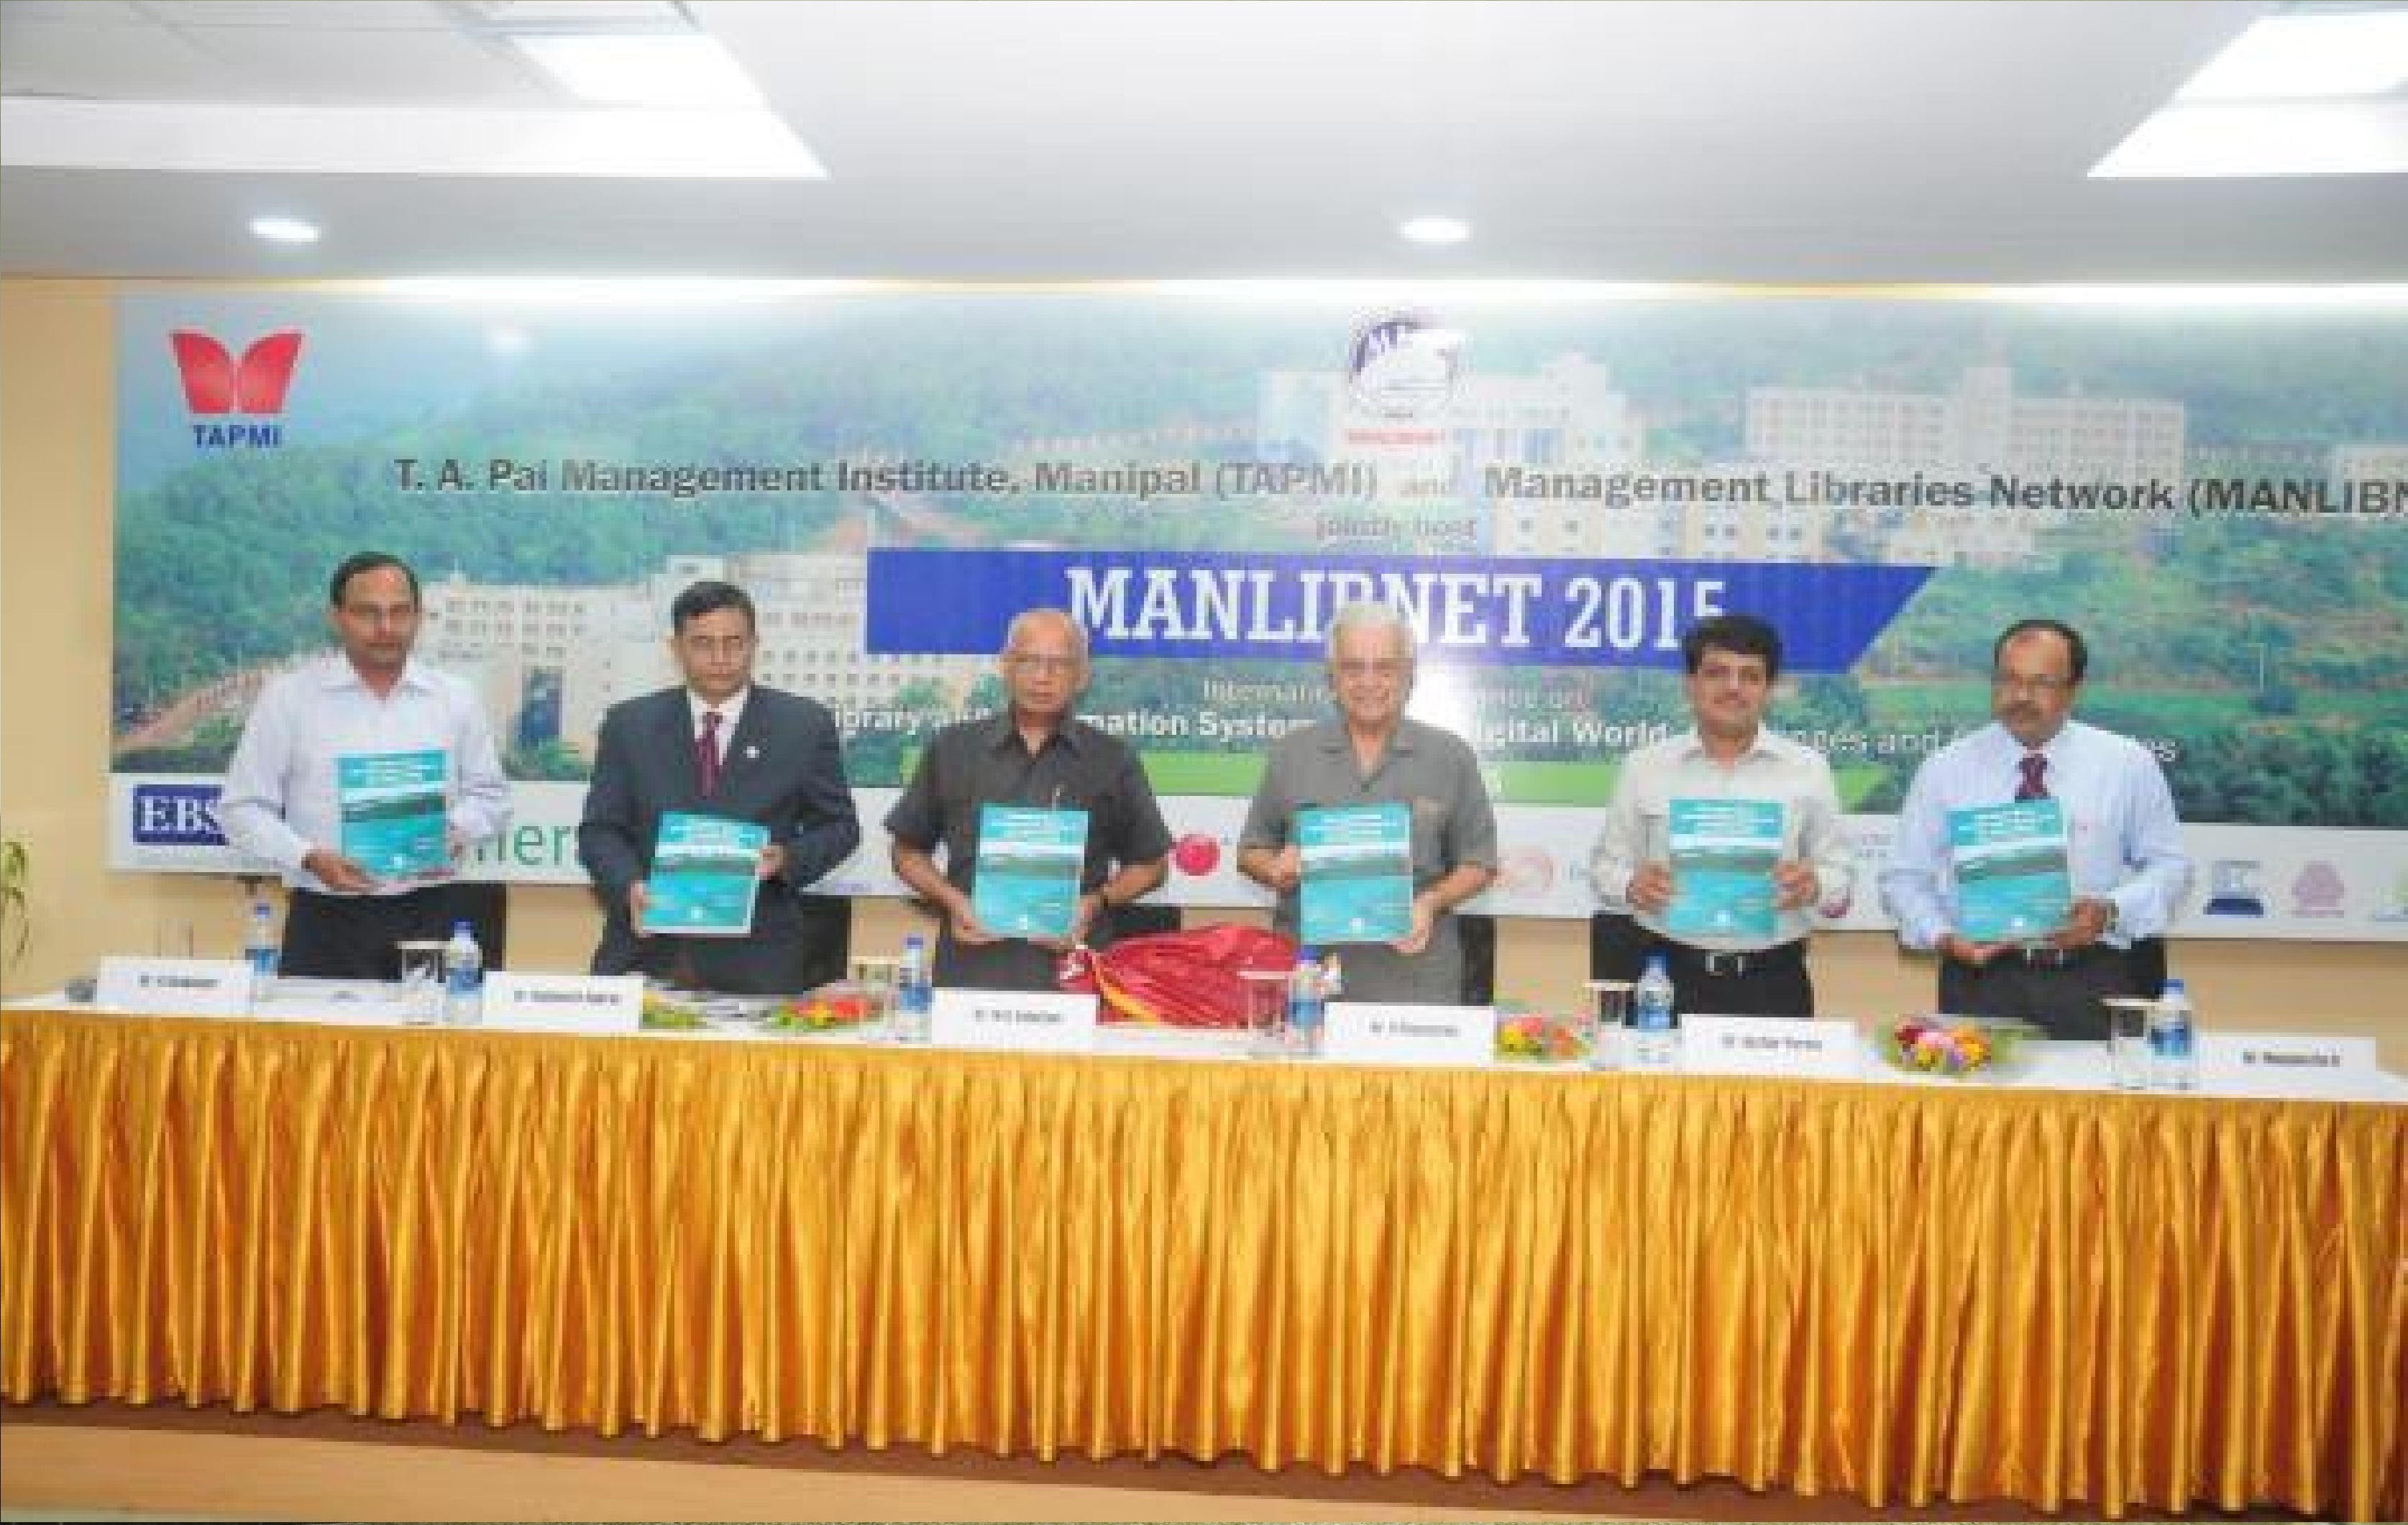 MANLIBNET 2015 @ TAPMI Manipal